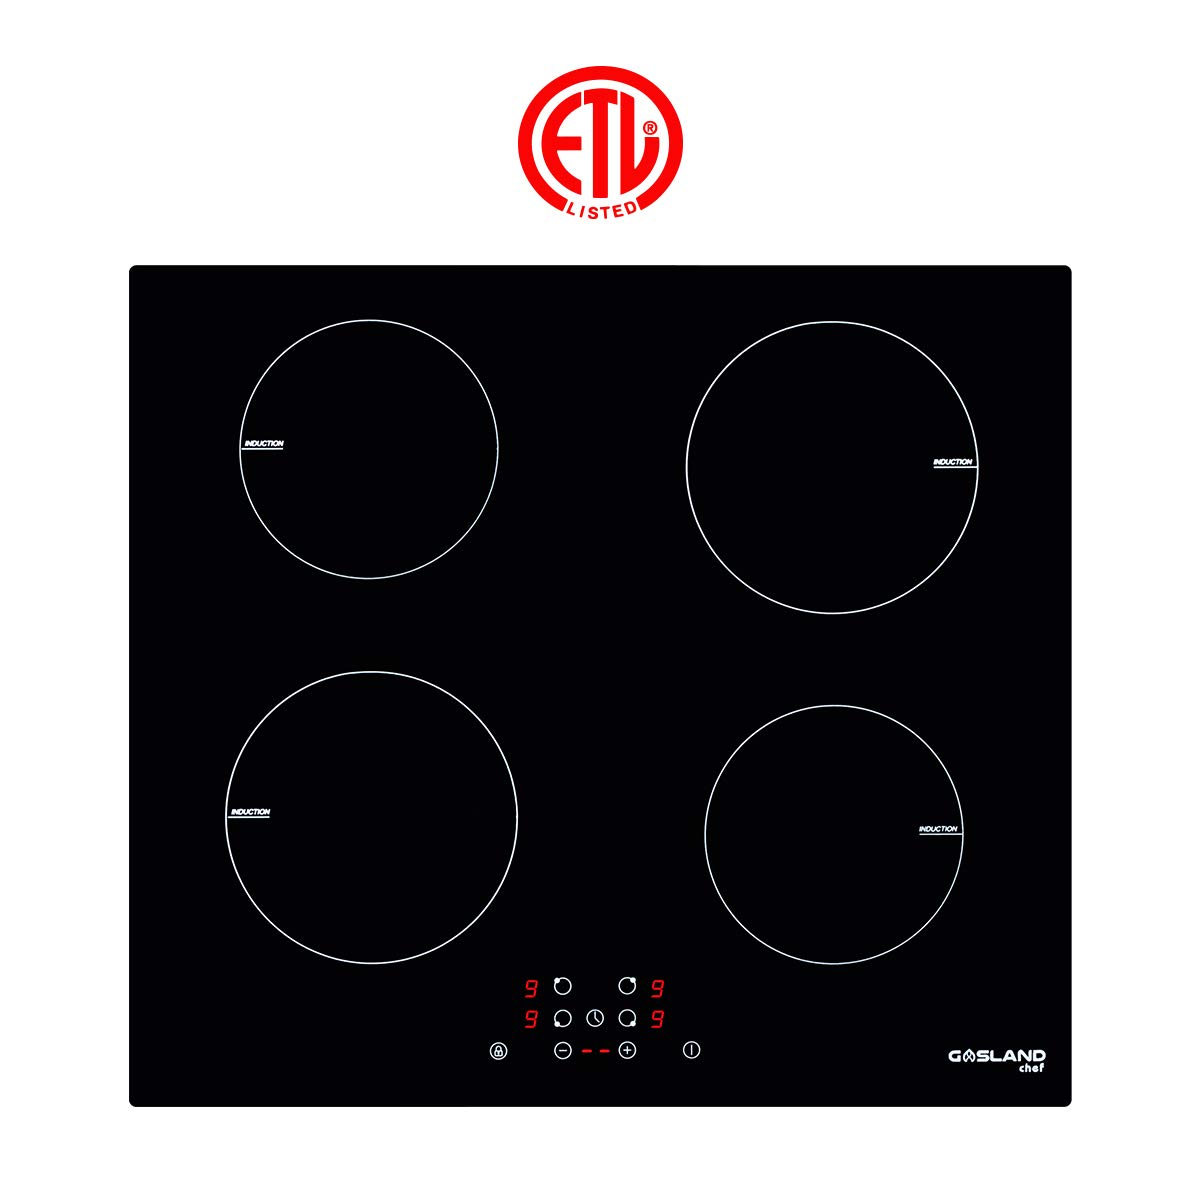 Induction Cooktop, Gasland chef IH60BF Built-in Induction Cooker, Vitro Ceramic Surface Electric Cooktop, 24